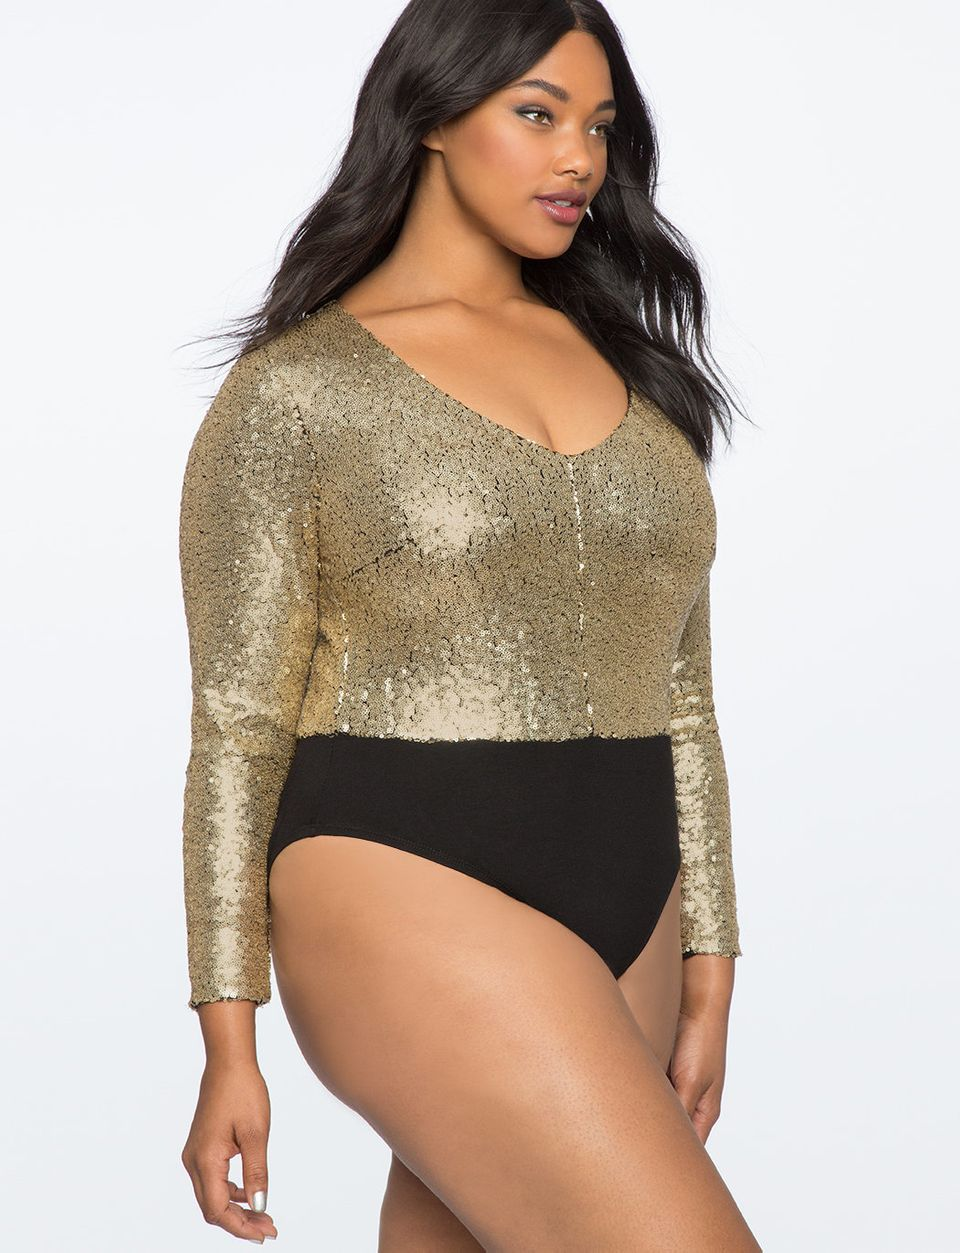 70a13b9a70 16 Sites To Buy Plus Size Bodysuits You'll Actually Want To Wear ...